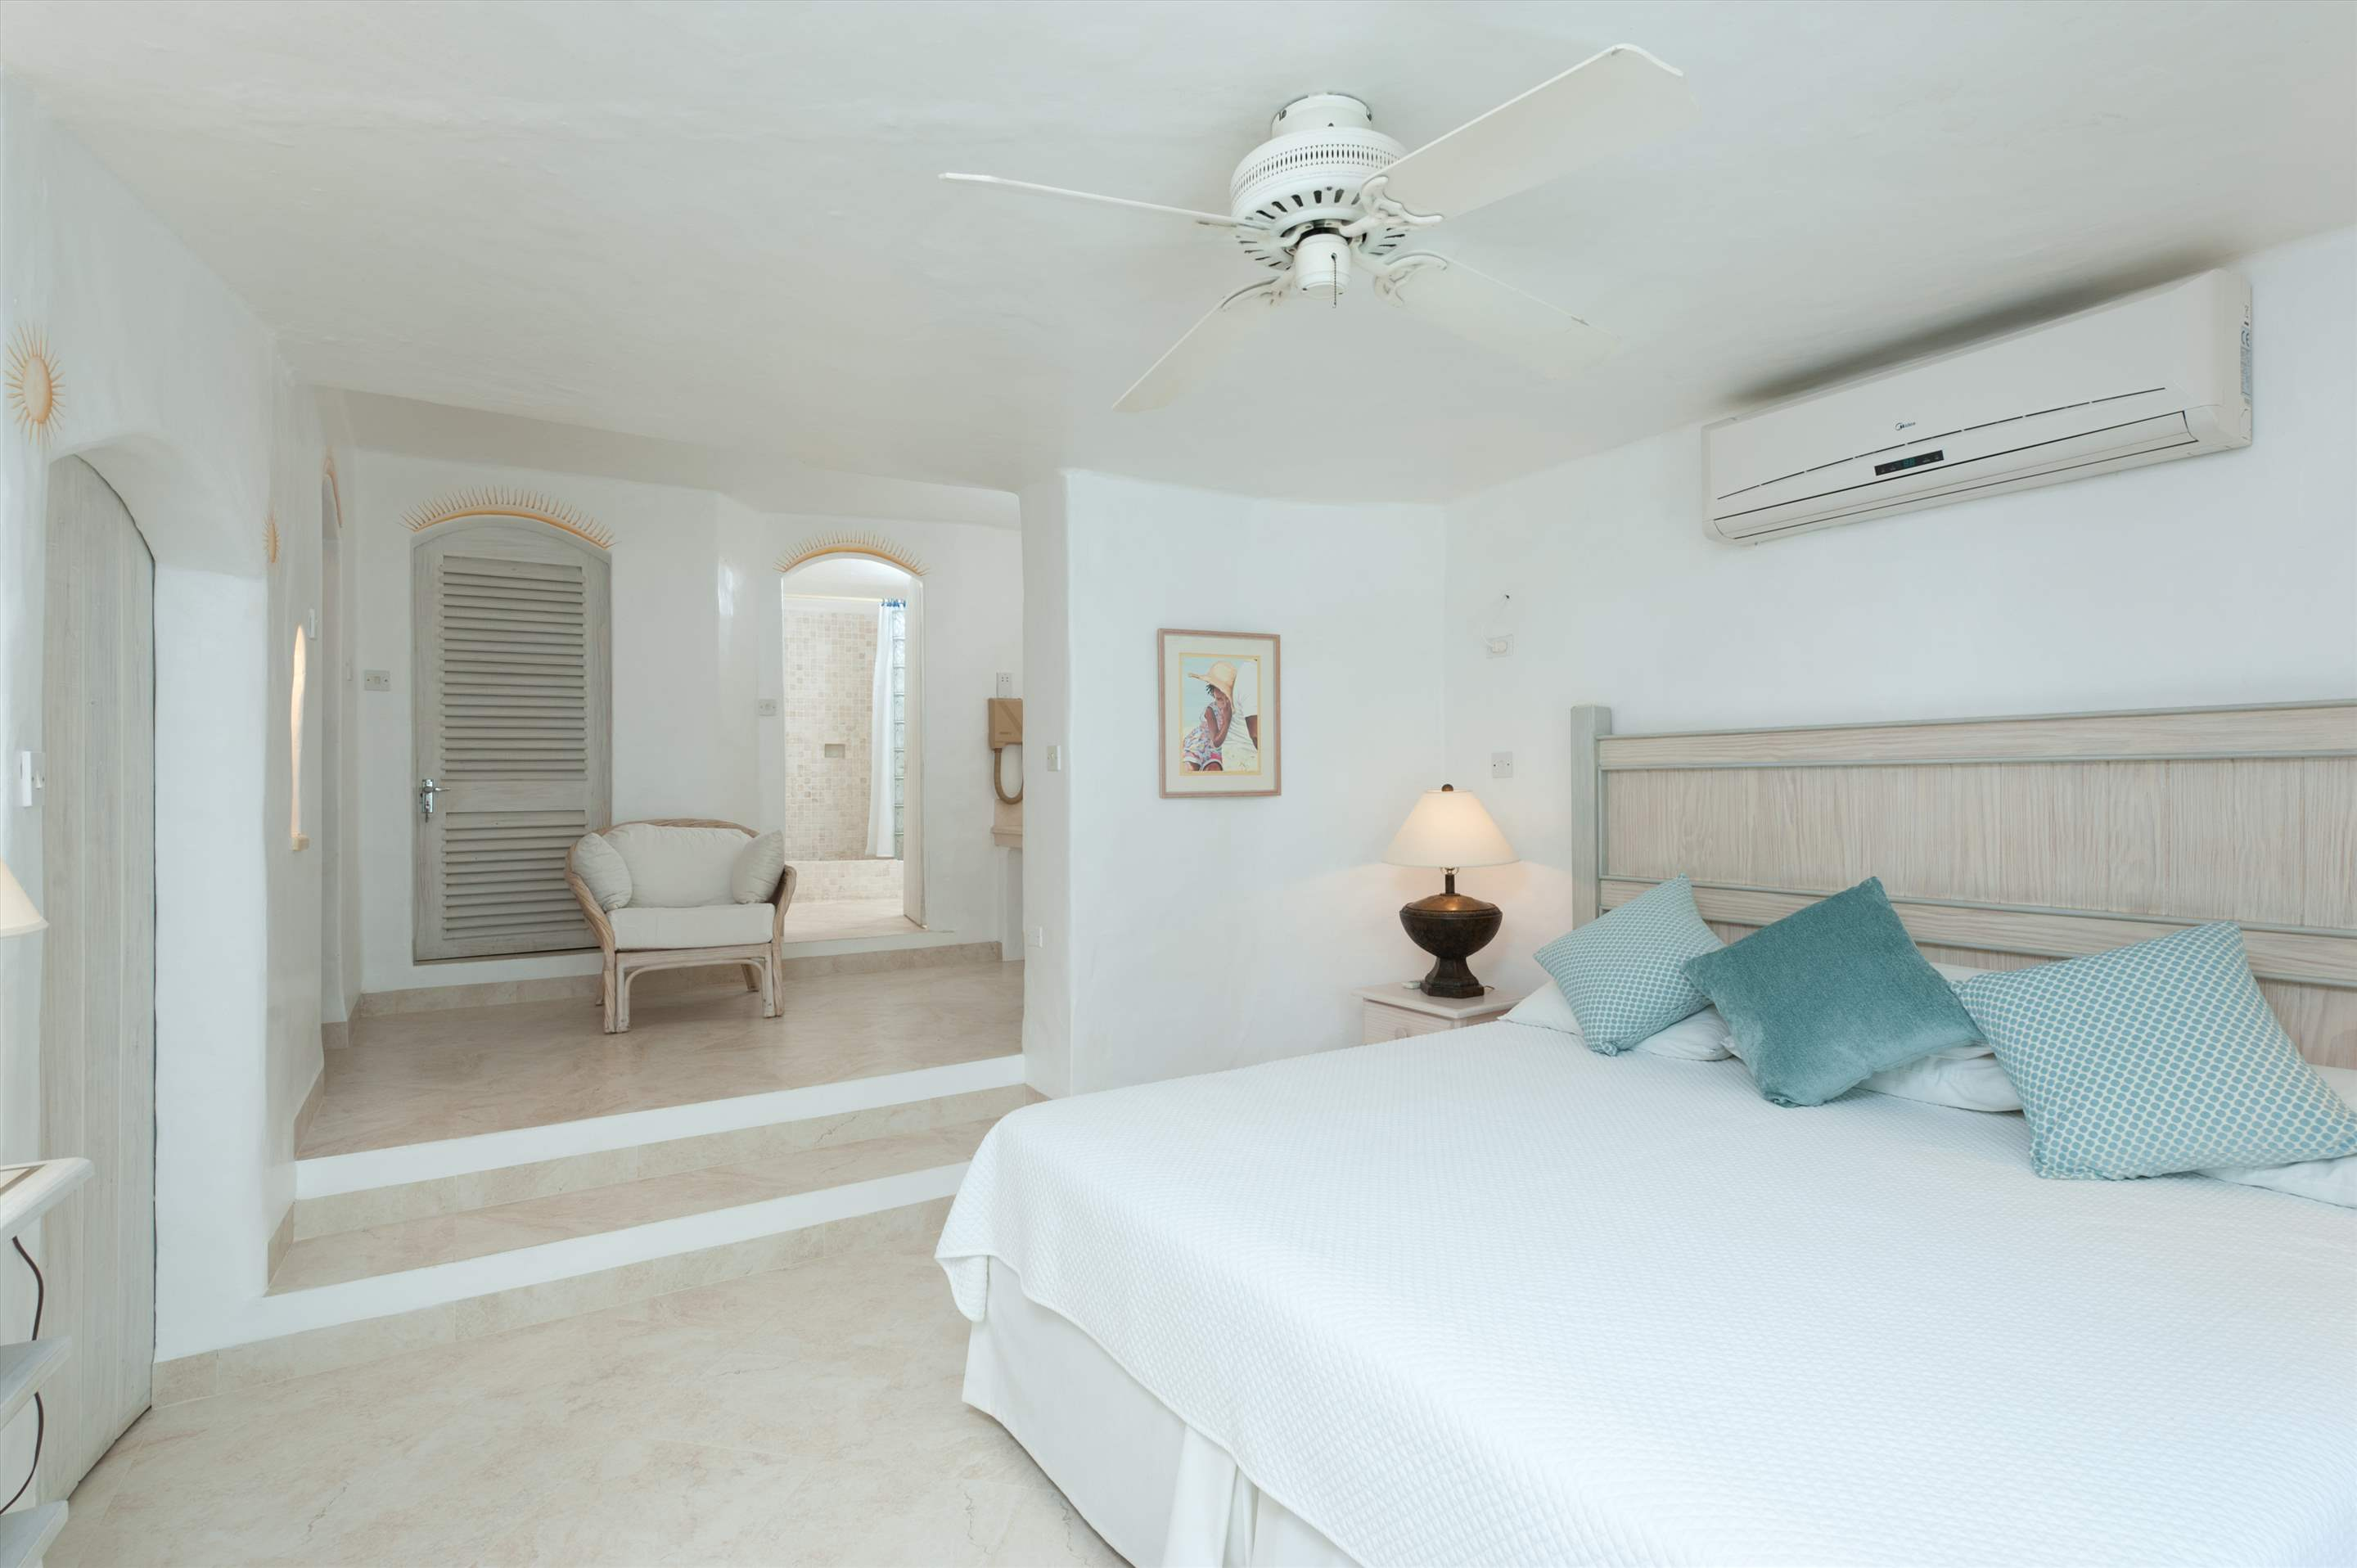 Merlin Bay Gingerbread, 3 bedroom villa in St. James & West Coast, Barbados Photo #12